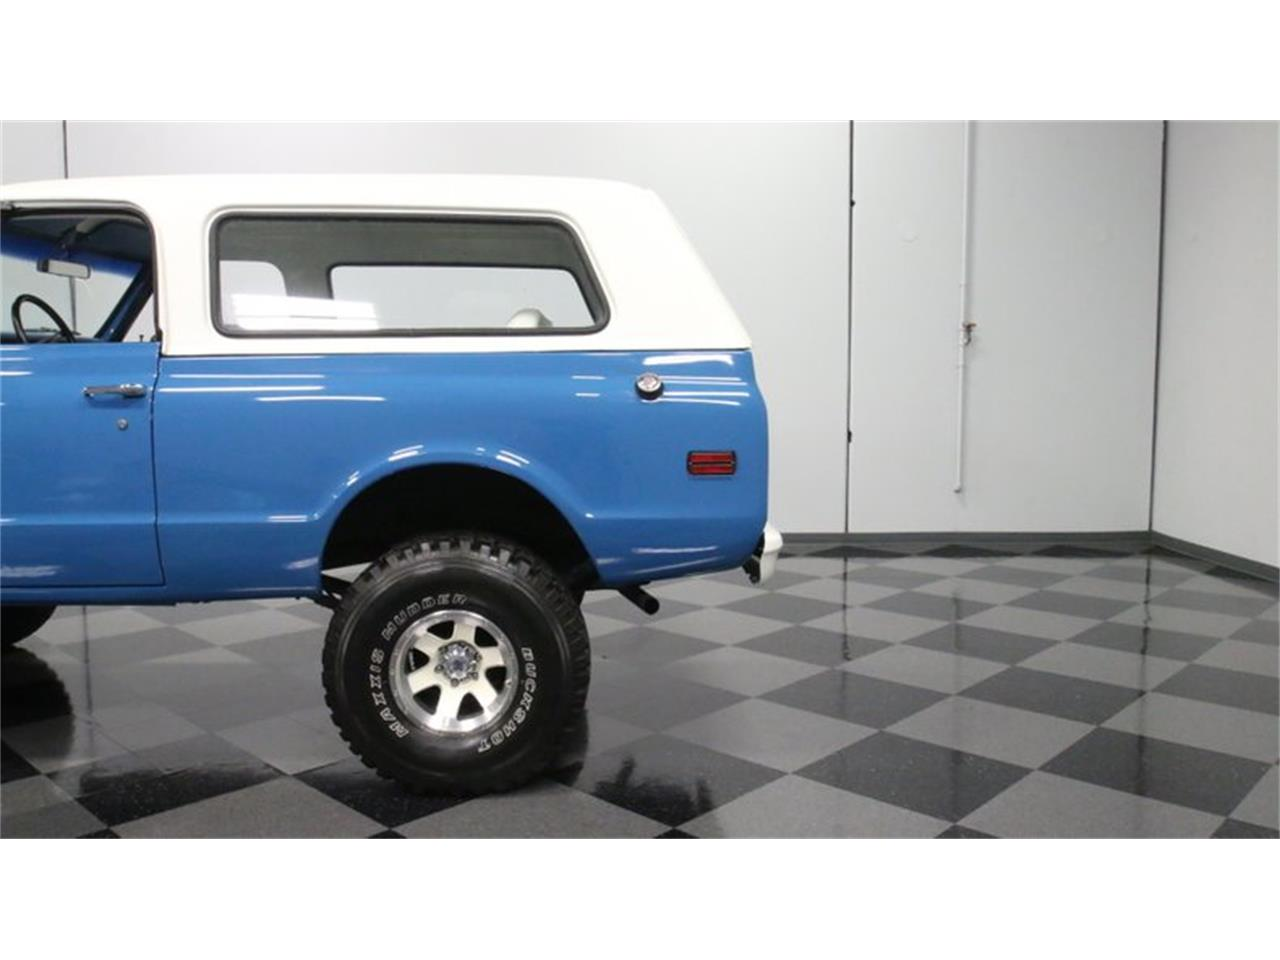 Large Picture of 1971 Blazer located in Lithia Springs Georgia - $52,995.00 Offered by Streetside Classics - Atlanta - PZLZ